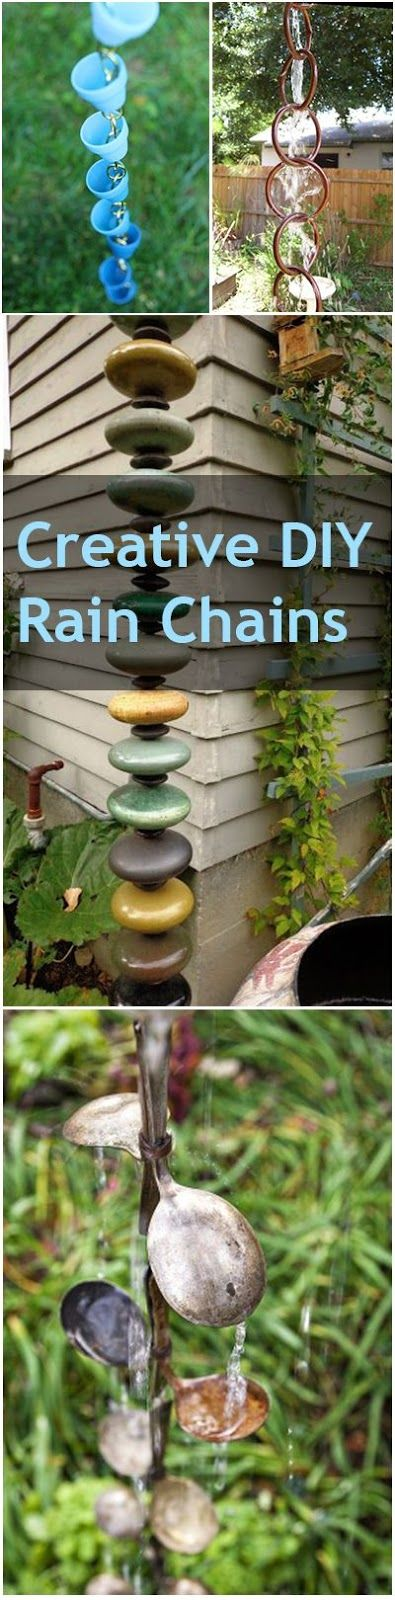 Best 25 garden crafts ideas on pinterest diy yard decor diy 10 creative diy rain chain ideas solutioingenieria Choice Image